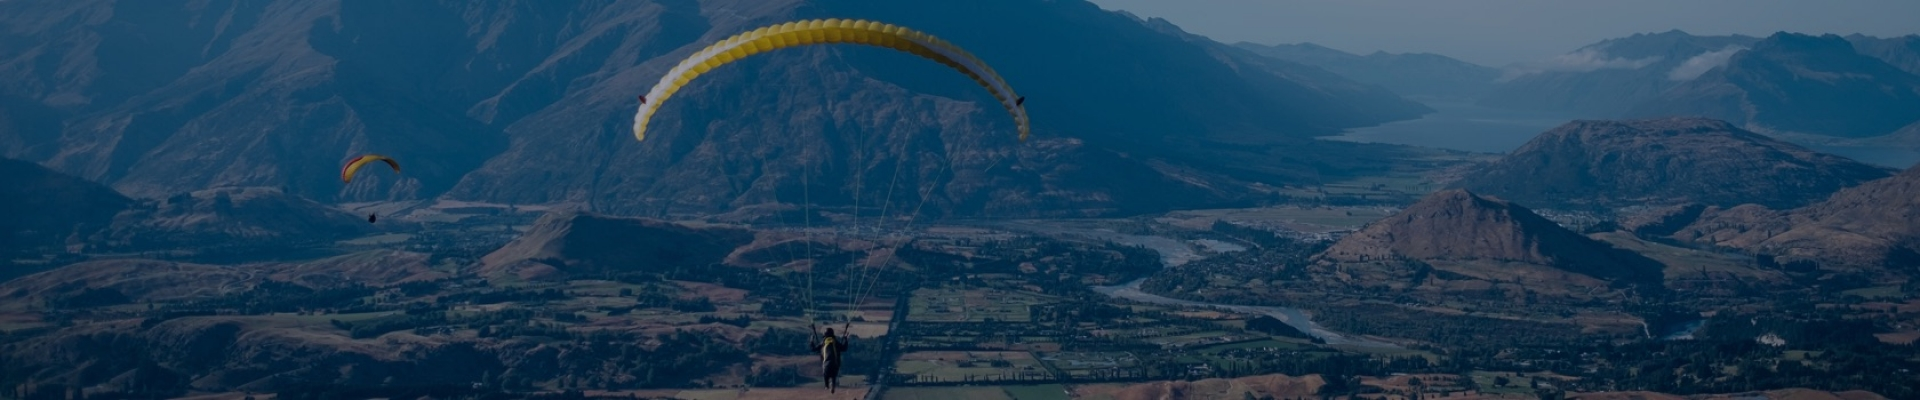 Paragliding courses in India